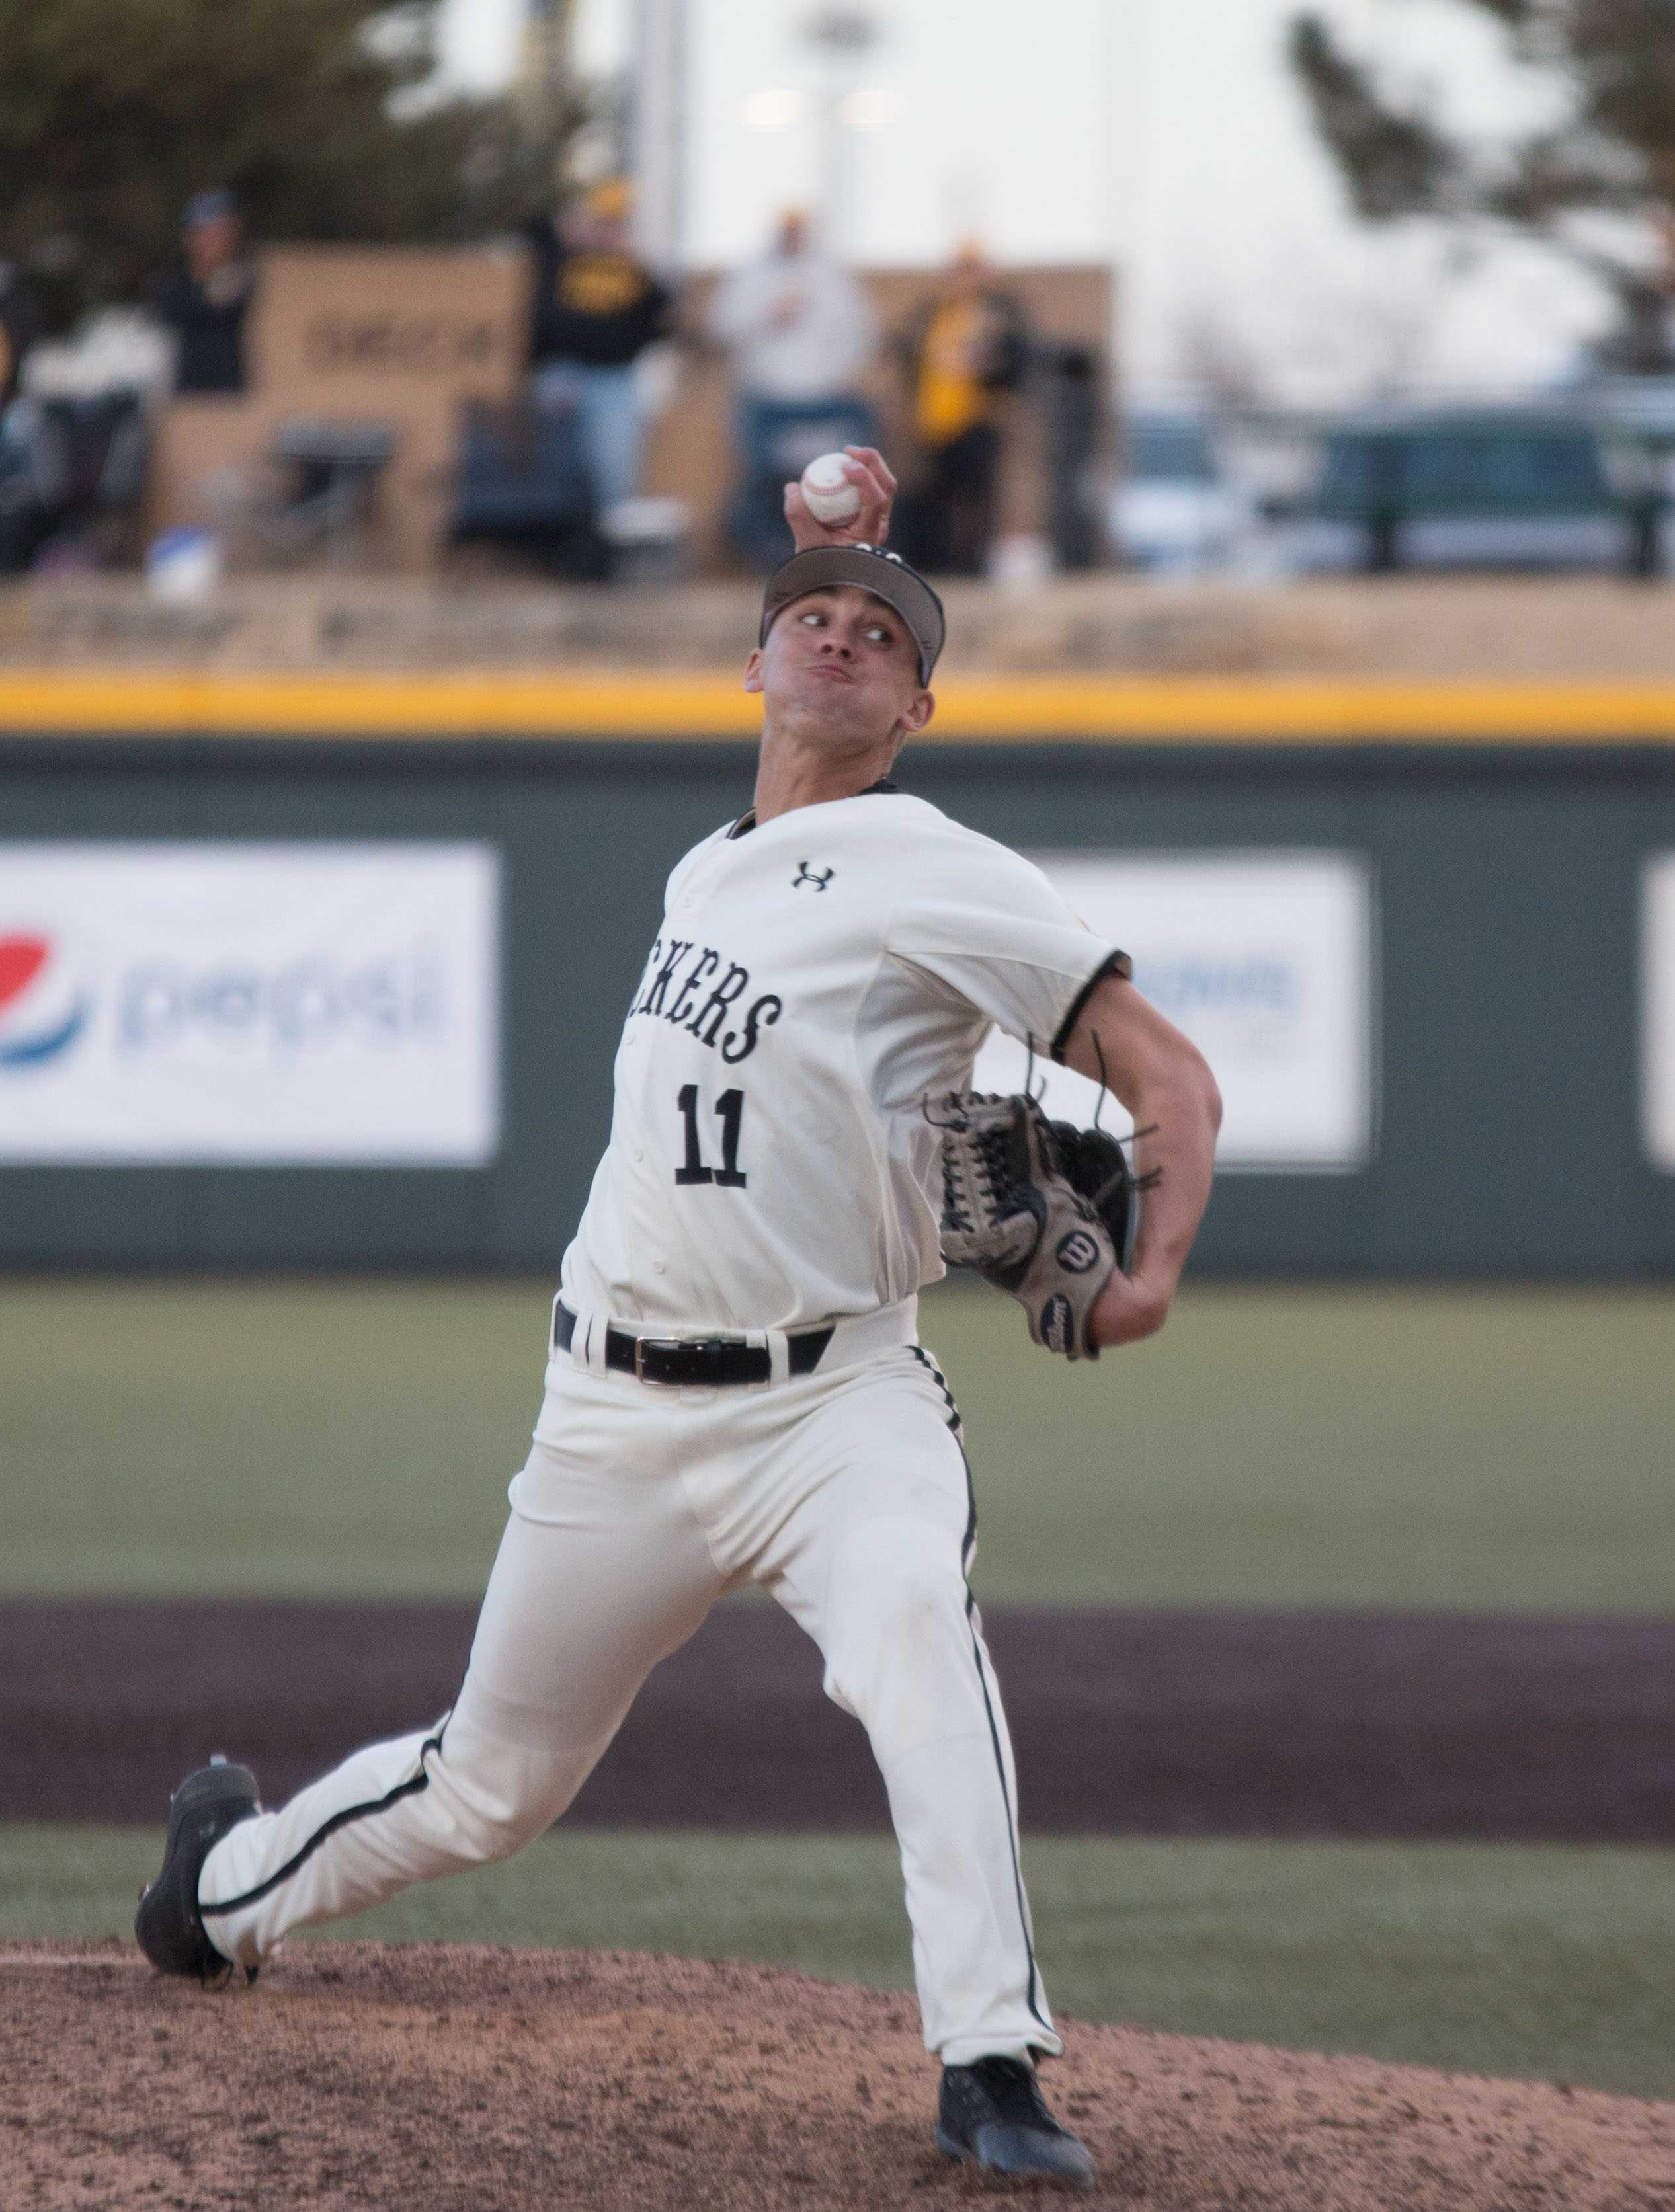 Wichita State's Ben Hecht winds up for a pitch during the game against Utah Valley. Hecht pitched during one inning of the game. (Feb. 17, 2017)